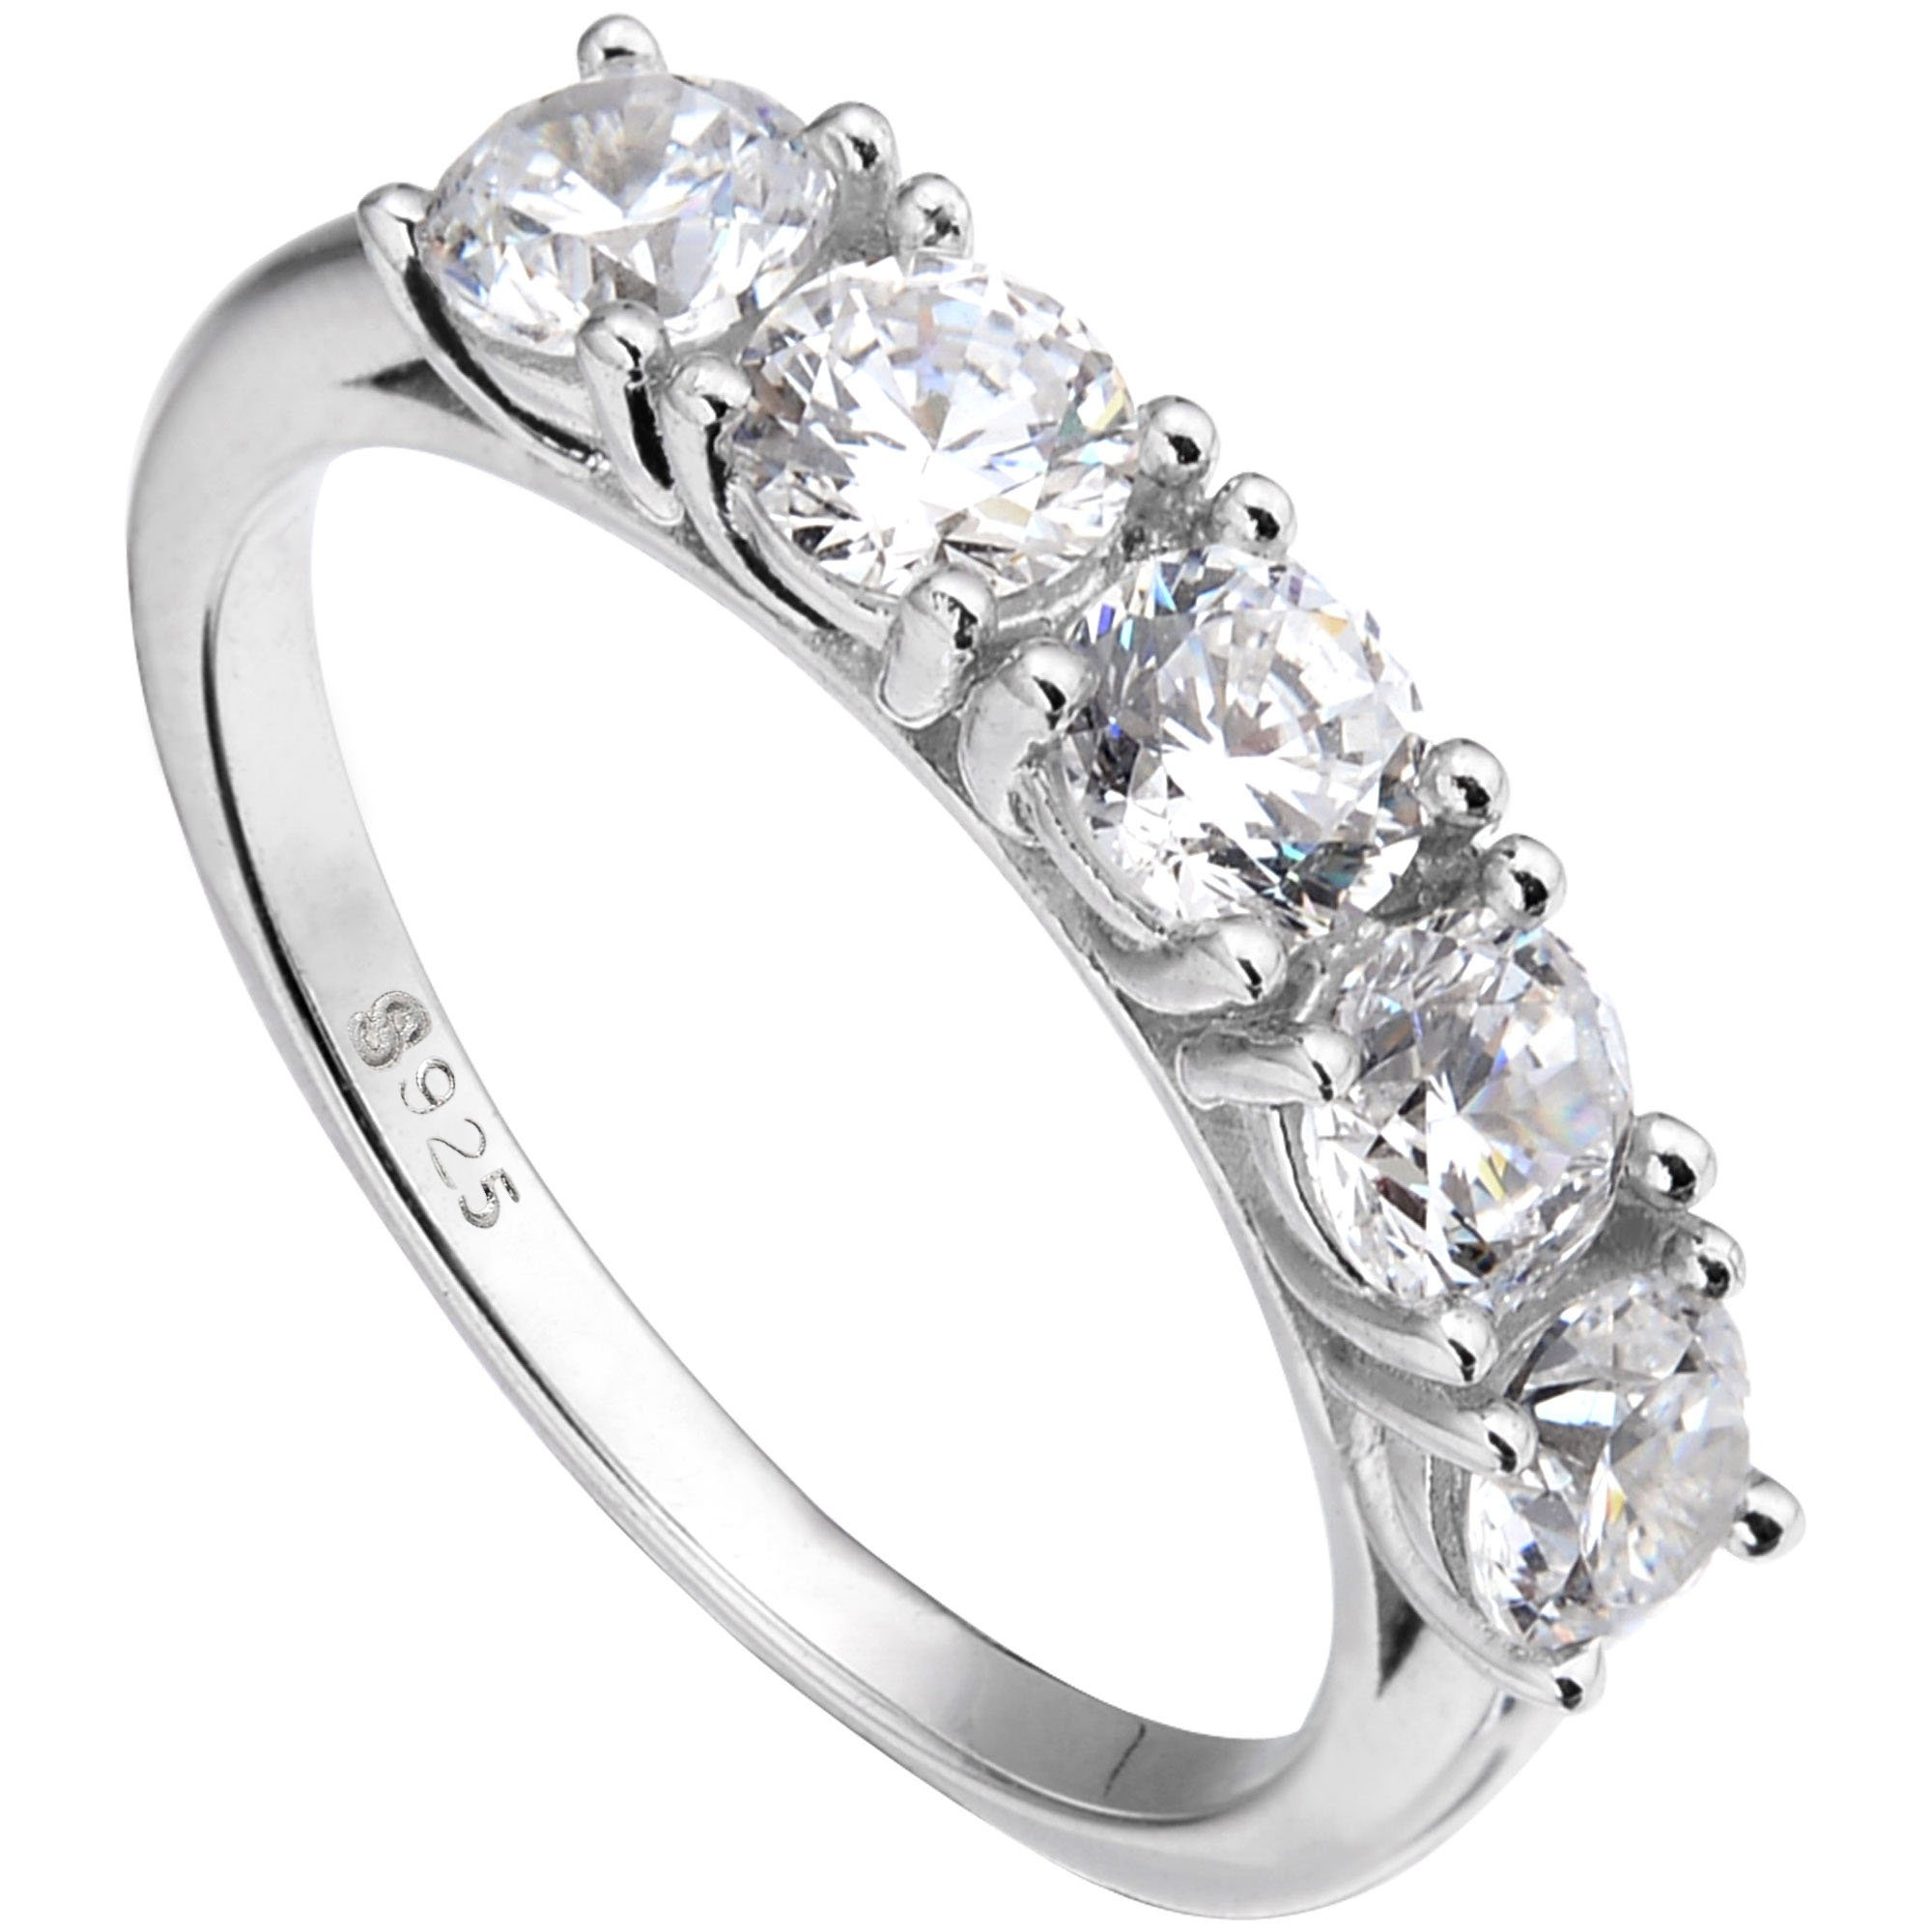 EVER FAITH 925 Sterling Silver Prong Round CZ Half Eternity Engagement Bride Ring Clear - Size 8